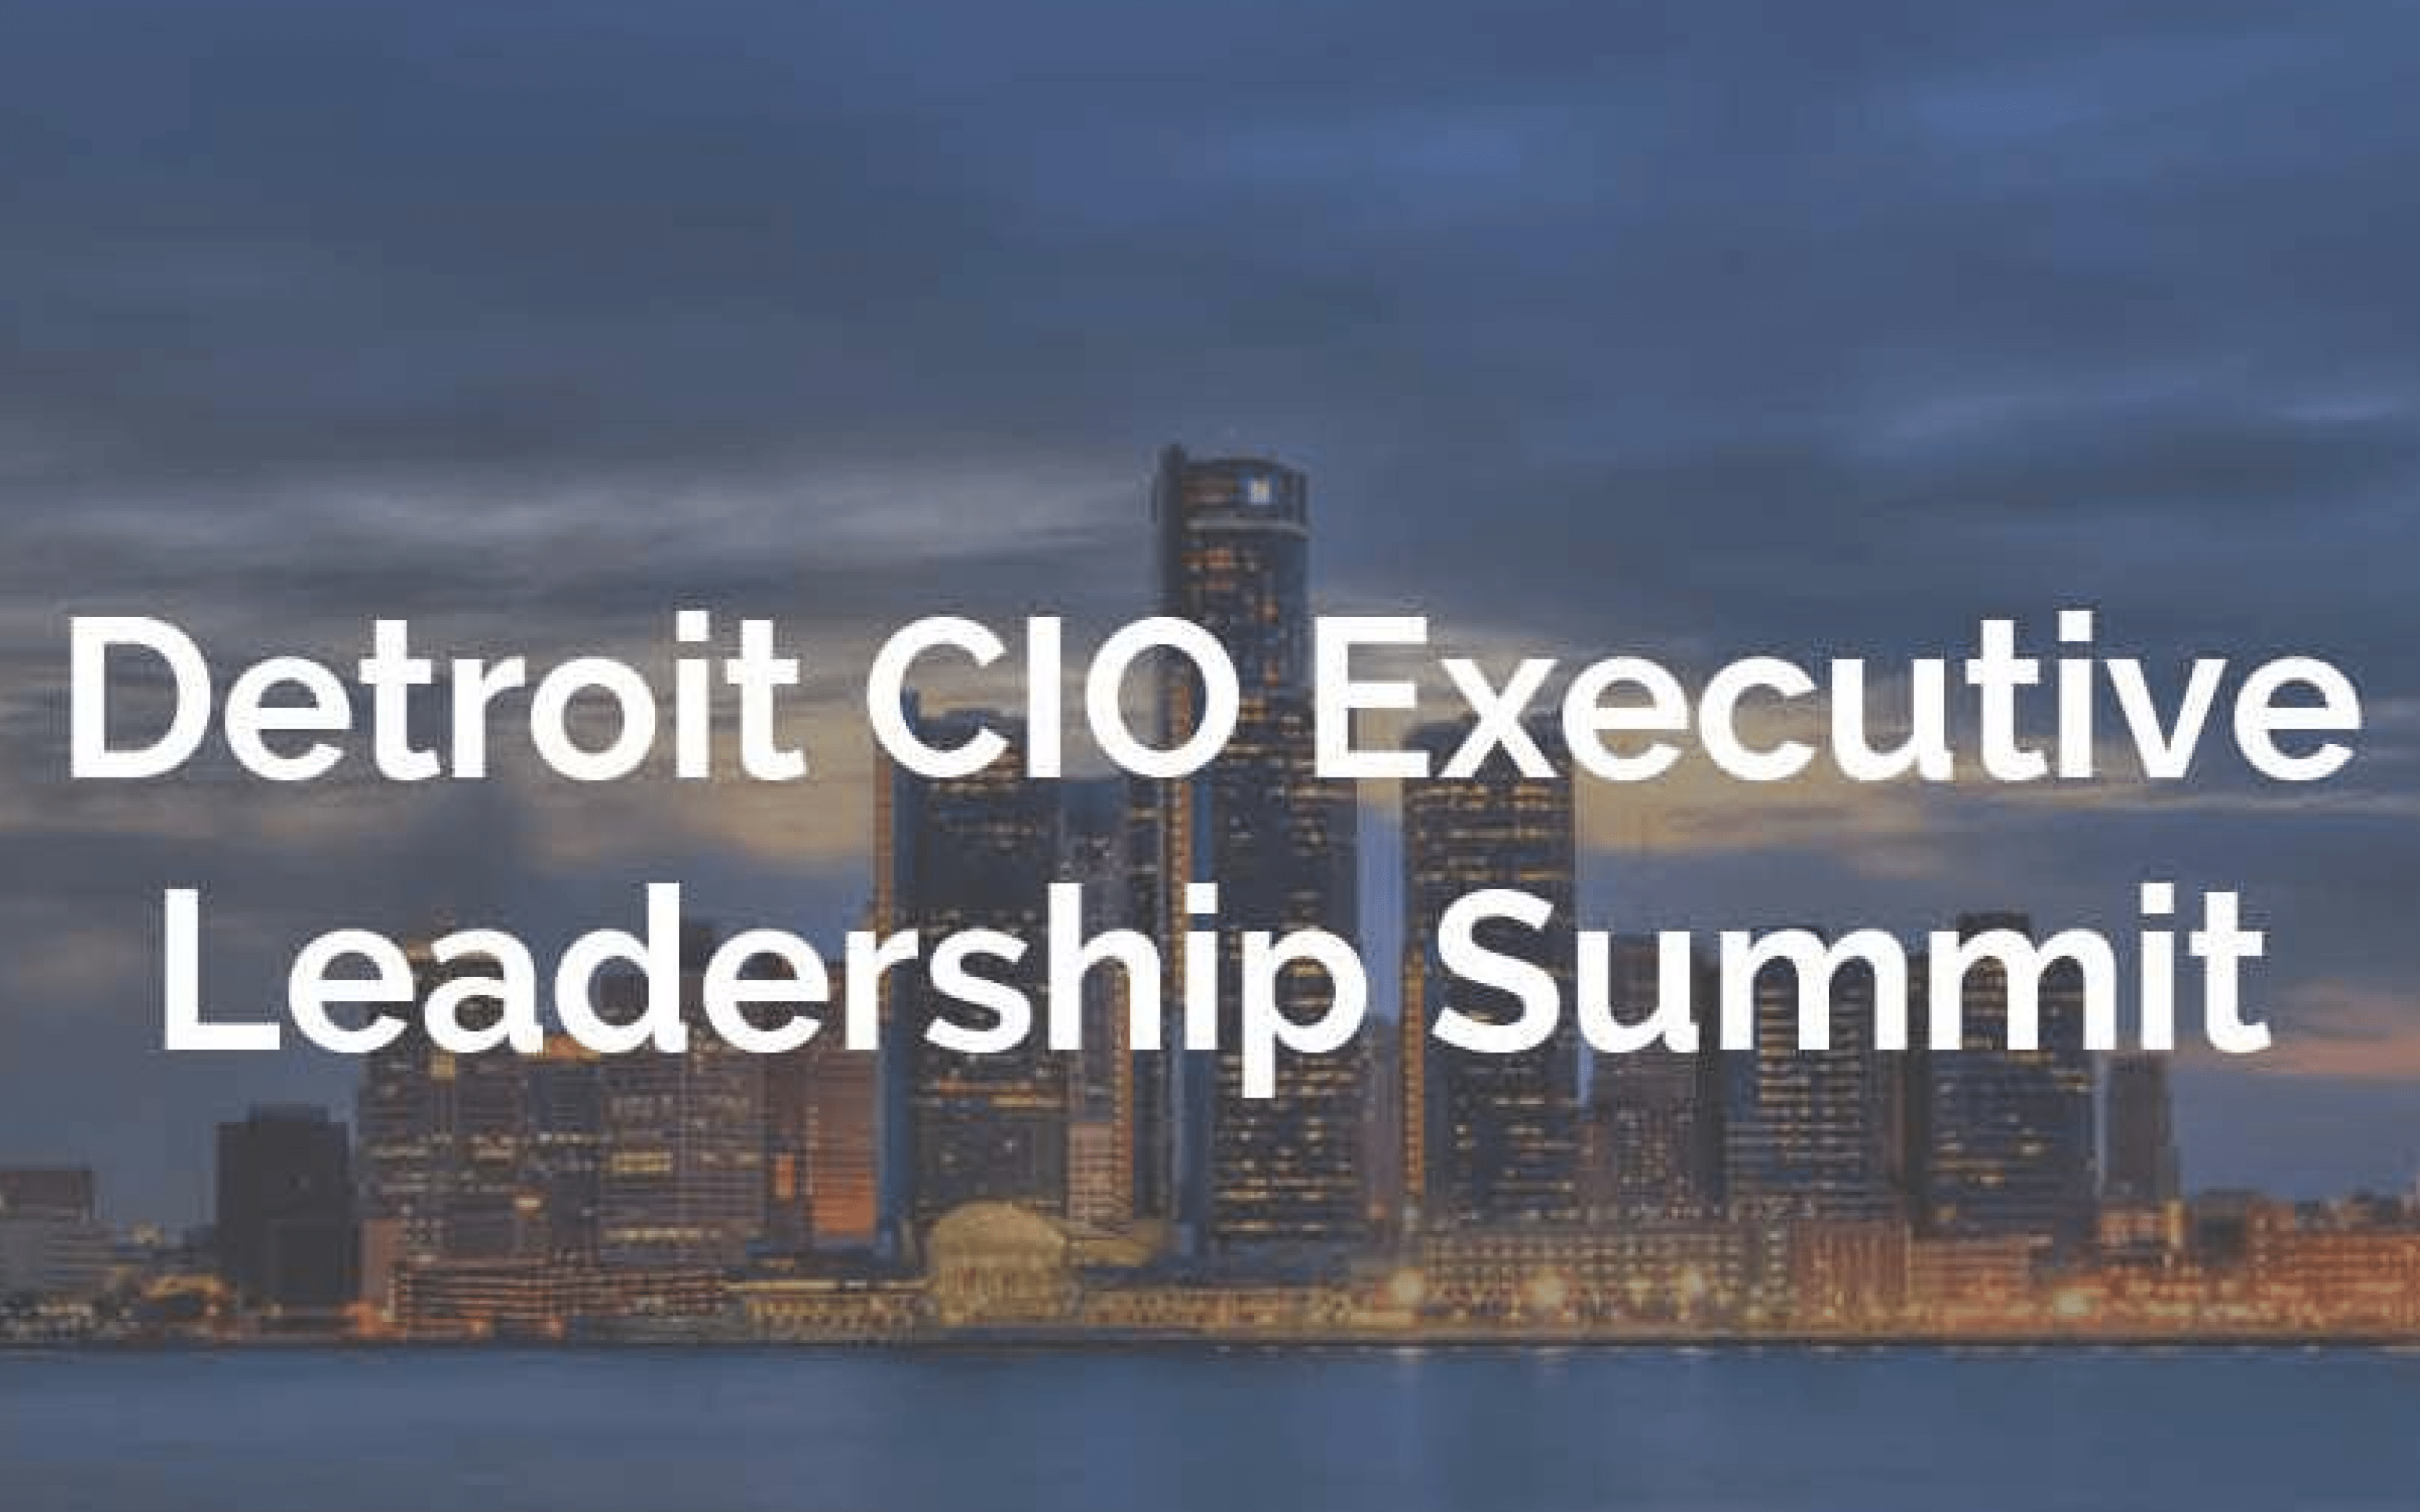 Ecosystems To Participate In Detroit CIO Executive Leadership Summit